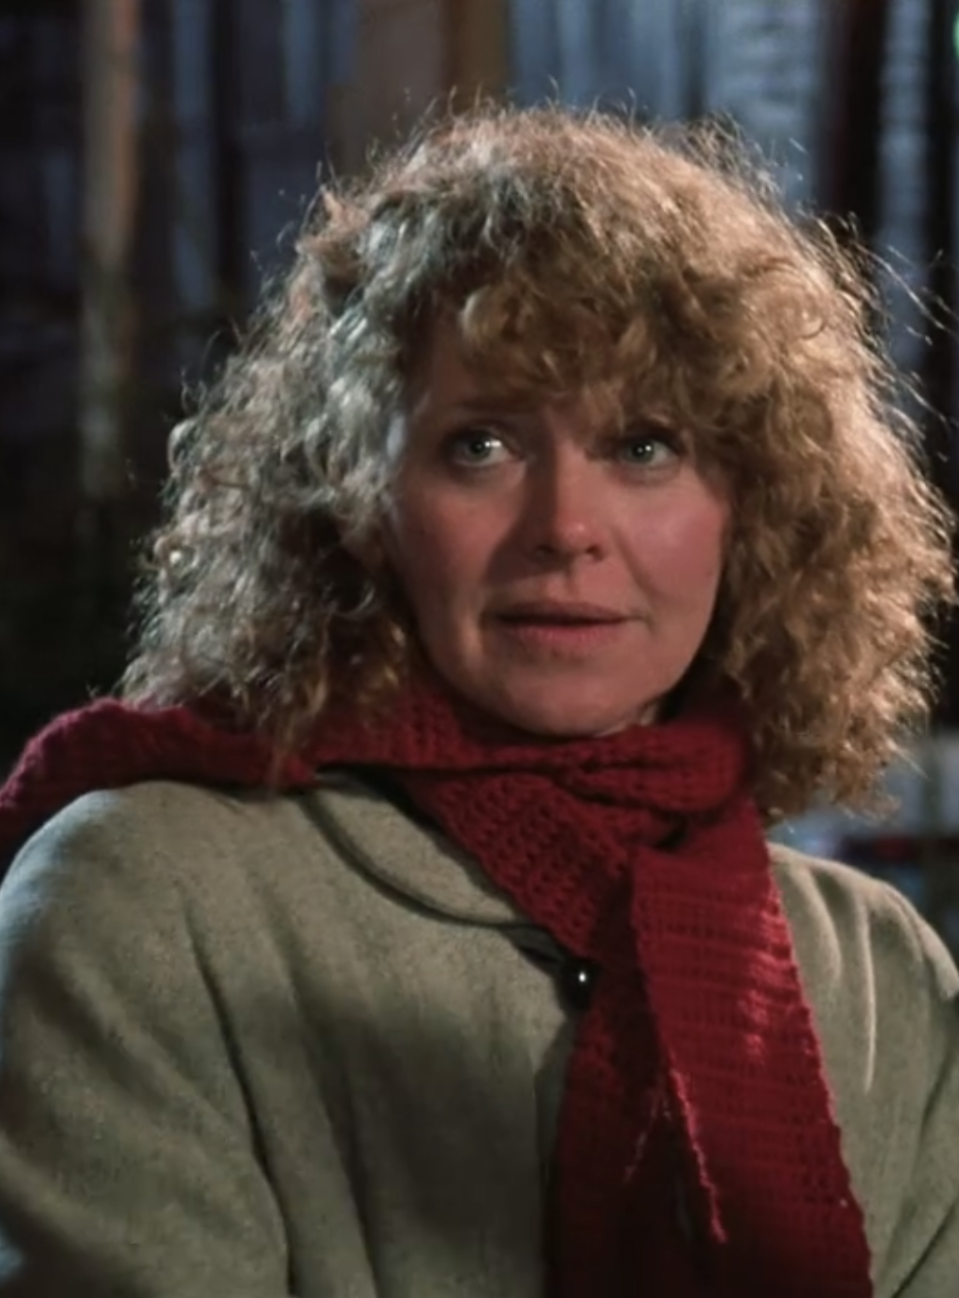 """<p><strong>Melinda Dillon</strong>'s history with acting runs deep. Before playing beloved Mother Parker in <em>A Christmas Story</em>, she earned a <a href=""""https://www.broadwayworld.com/tonyawardspersoninfo.php?nomname=Melinda%20Dillon"""" rel=""""nofollow noopener"""" target=""""_blank"""" data-ylk=""""slk:Tony nomination"""" class=""""link rapid-noclick-resp"""">Tony nomination</a> for her 1963 Broadway debut in <em>Who's Afraid of Virginia Woolf?</em> She was then <a href=""""https://www.goldenglobes.com/person/melinda-dillon"""" rel=""""nofollow noopener"""" target=""""_blank"""" data-ylk=""""slk:nominated for a Golden Globe"""" class=""""link rapid-noclick-resp"""">nominated for a Golden Globe</a> for her role in the biographical film <em><a href=""""https://www.amazon.com/Bound-Glory-David-Carradine/dp/0792843568?tag=syn-yahoo-20&ascsubtag=%5Bartid%7C2164.g.35017104%5Bsrc%7Cyahoo-us"""" rel=""""nofollow noopener"""" target=""""_blank"""" data-ylk=""""slk:Bound for Glory"""" class=""""link rapid-noclick-resp"""">Bound for Glory</a></em>. Over the next five years, she'd go on to become a <a href=""""https://www.imdb.com/name/nm0227039/awards"""" rel=""""nofollow noopener"""" target=""""_blank"""" data-ylk=""""slk:two-time Oscars nominee"""" class=""""link rapid-noclick-resp"""">two-time Oscars nominee</a> for her performances in the sci-fi film <em><a href=""""https://www.amazon.com/Close-Encounters-Third-Kind-Directors/dp/B000PNCETC?tag=syn-yahoo-20&ascsubtag=%5Bartid%7C2164.g.35017104%5Bsrc%7Cyahoo-us"""" rel=""""nofollow noopener"""" target=""""_blank"""" data-ylk=""""slk:Close Encounters of the Third Kind"""" class=""""link rapid-noclick-resp"""">Close Encounters of the Third Kind</a></em> and the thriller <em><a href=""""https://www.amazon.com/Absence-Malice-Paul-Newman/dp/B00190RLWA?tag=syn-yahoo-20&ascsubtag=%5Bartid%7C2164.g.35017104%5Bsrc%7Cyahoo-us"""" rel=""""nofollow noopener"""" target=""""_blank"""" data-ylk=""""slk:Absence of Malice"""" class=""""link rapid-noclick-resp"""">Absence of Malice</a></em>.</p>"""